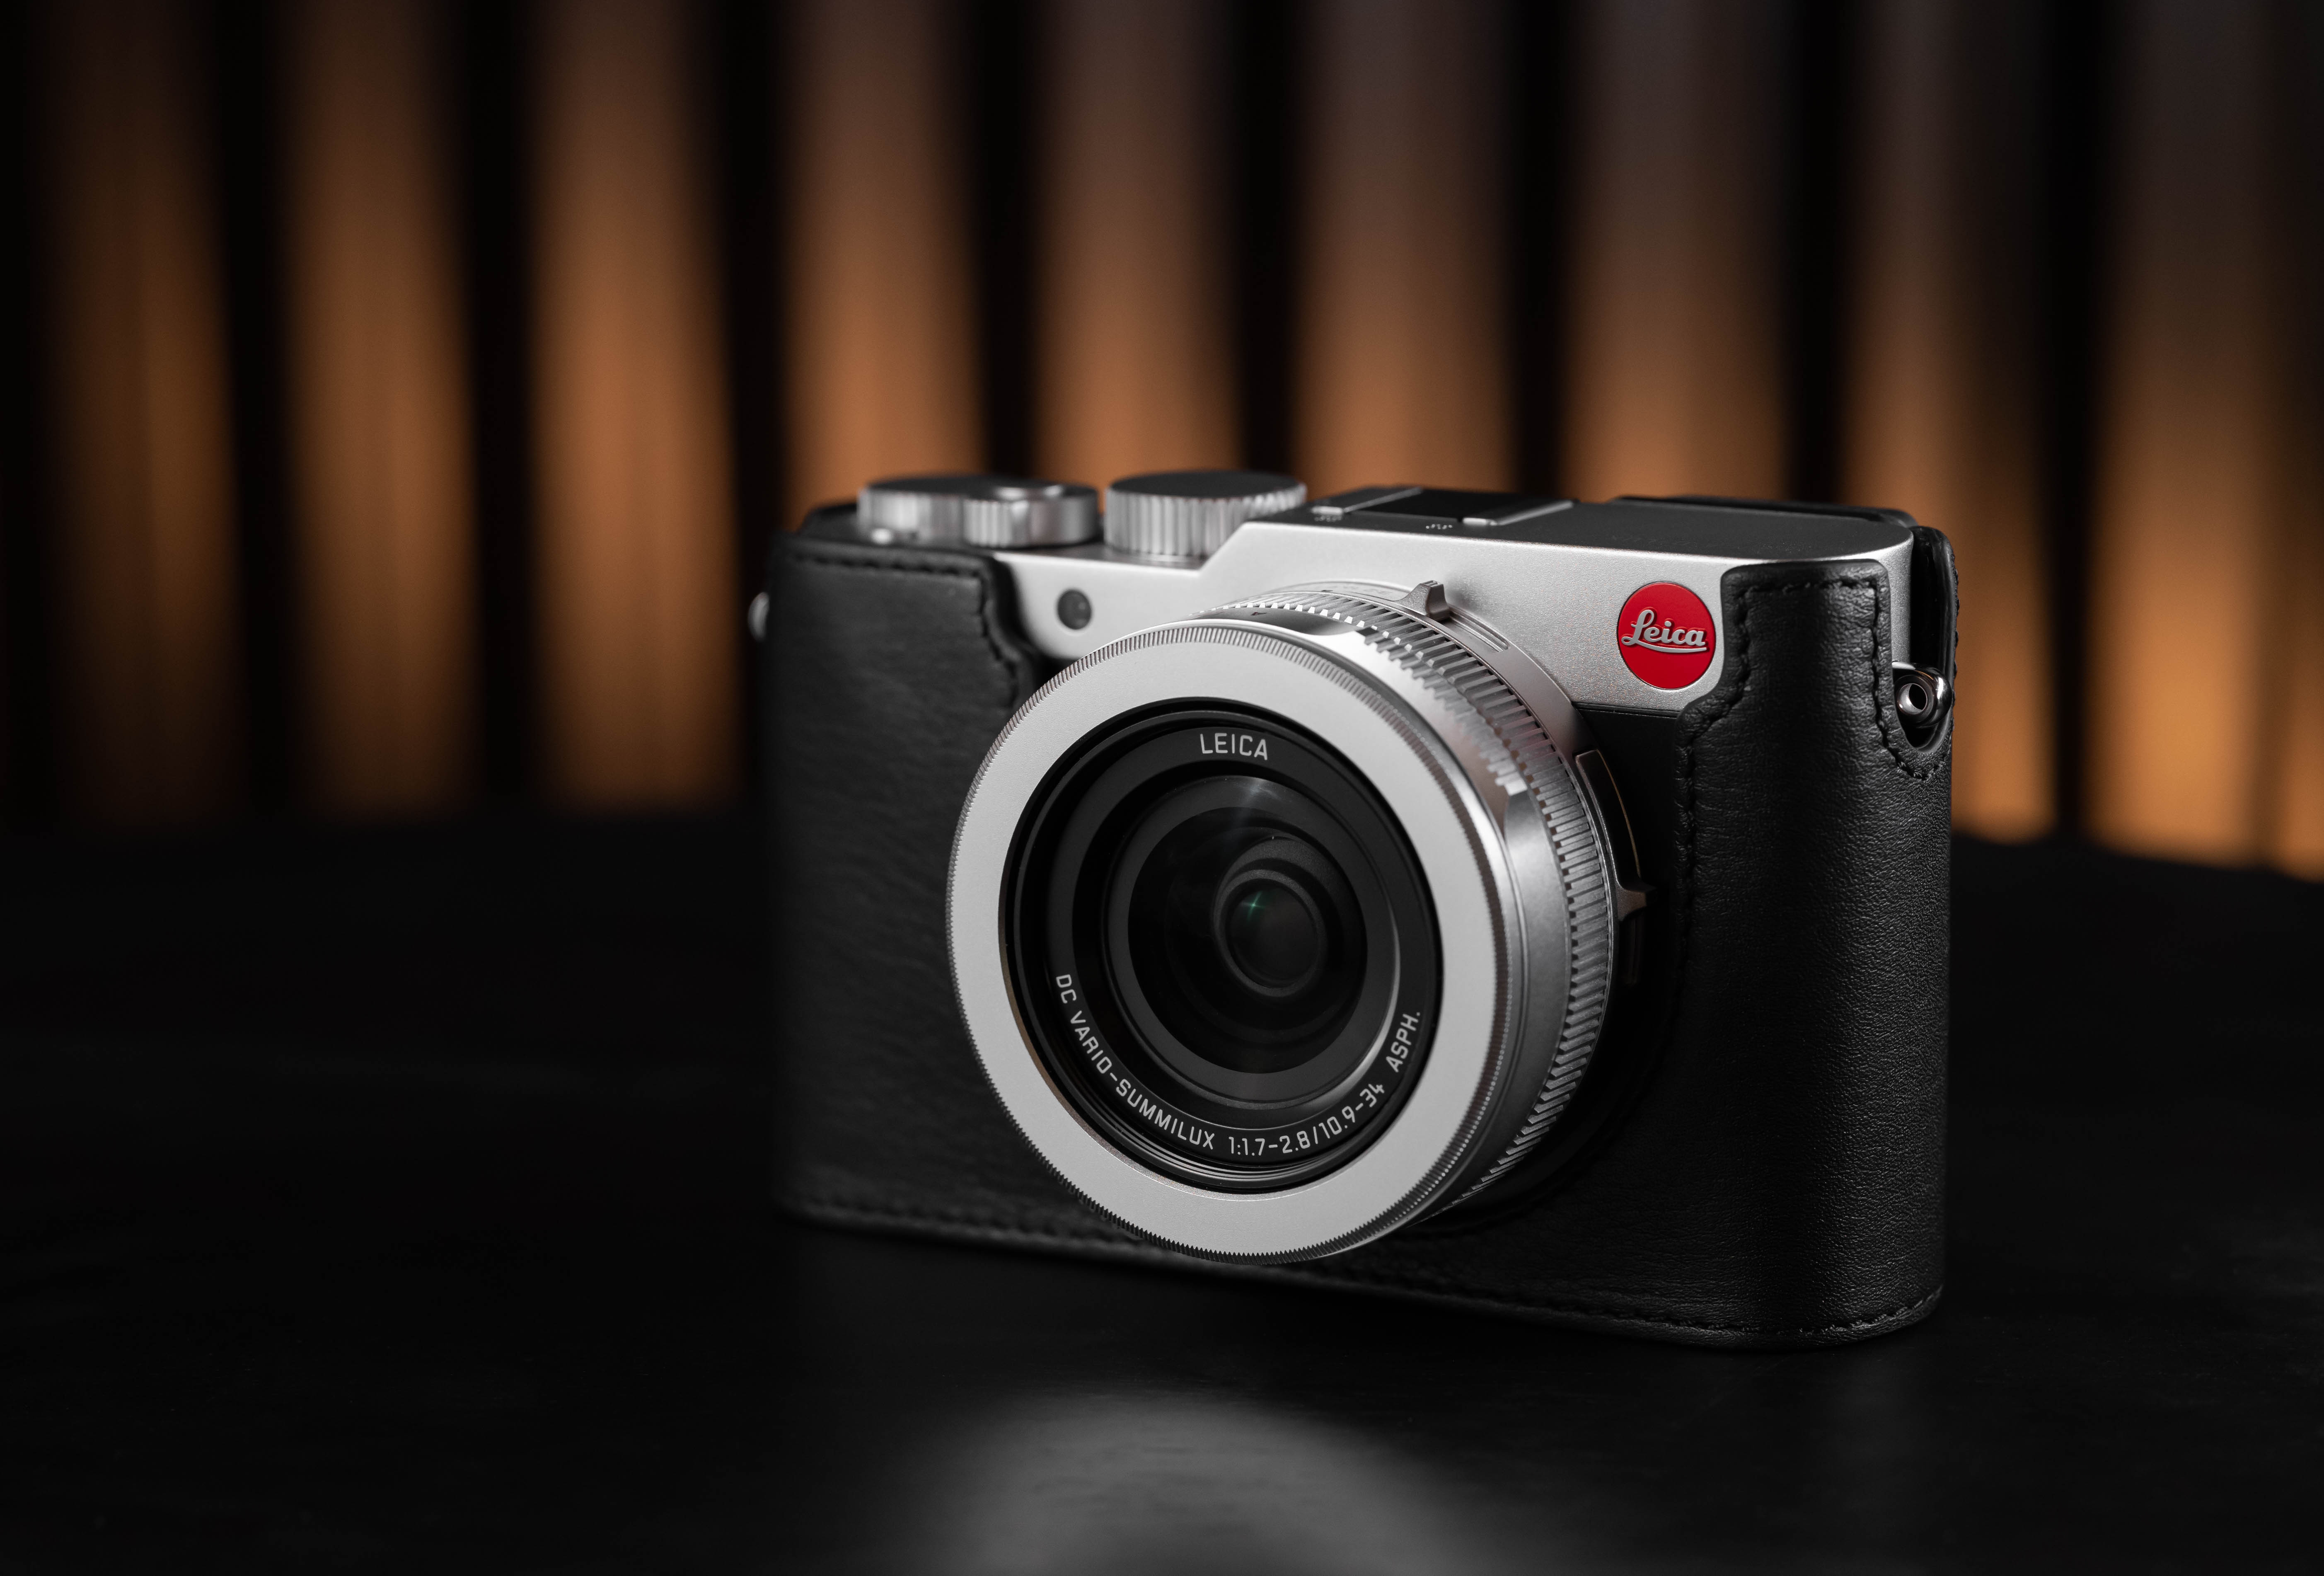 LEICA D-LUX 7 Silver Essential Kit *Christmas Limited Offer*